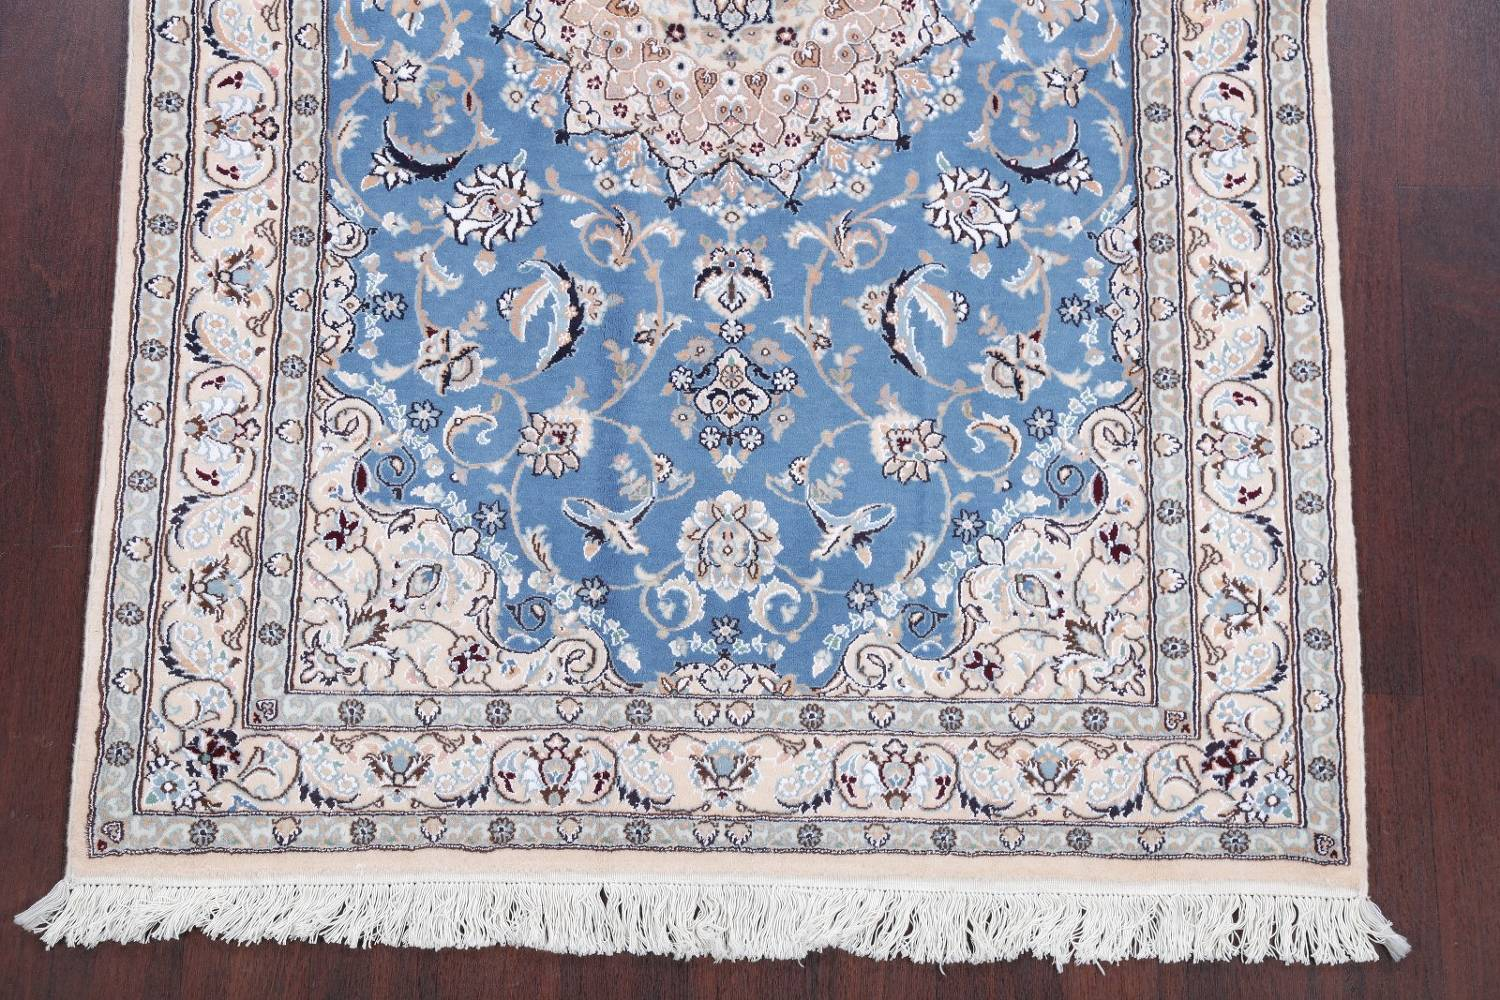 Floral Blue Nain Persian Hand-Knotted 4x7 Wool Silk Area Rug image 5